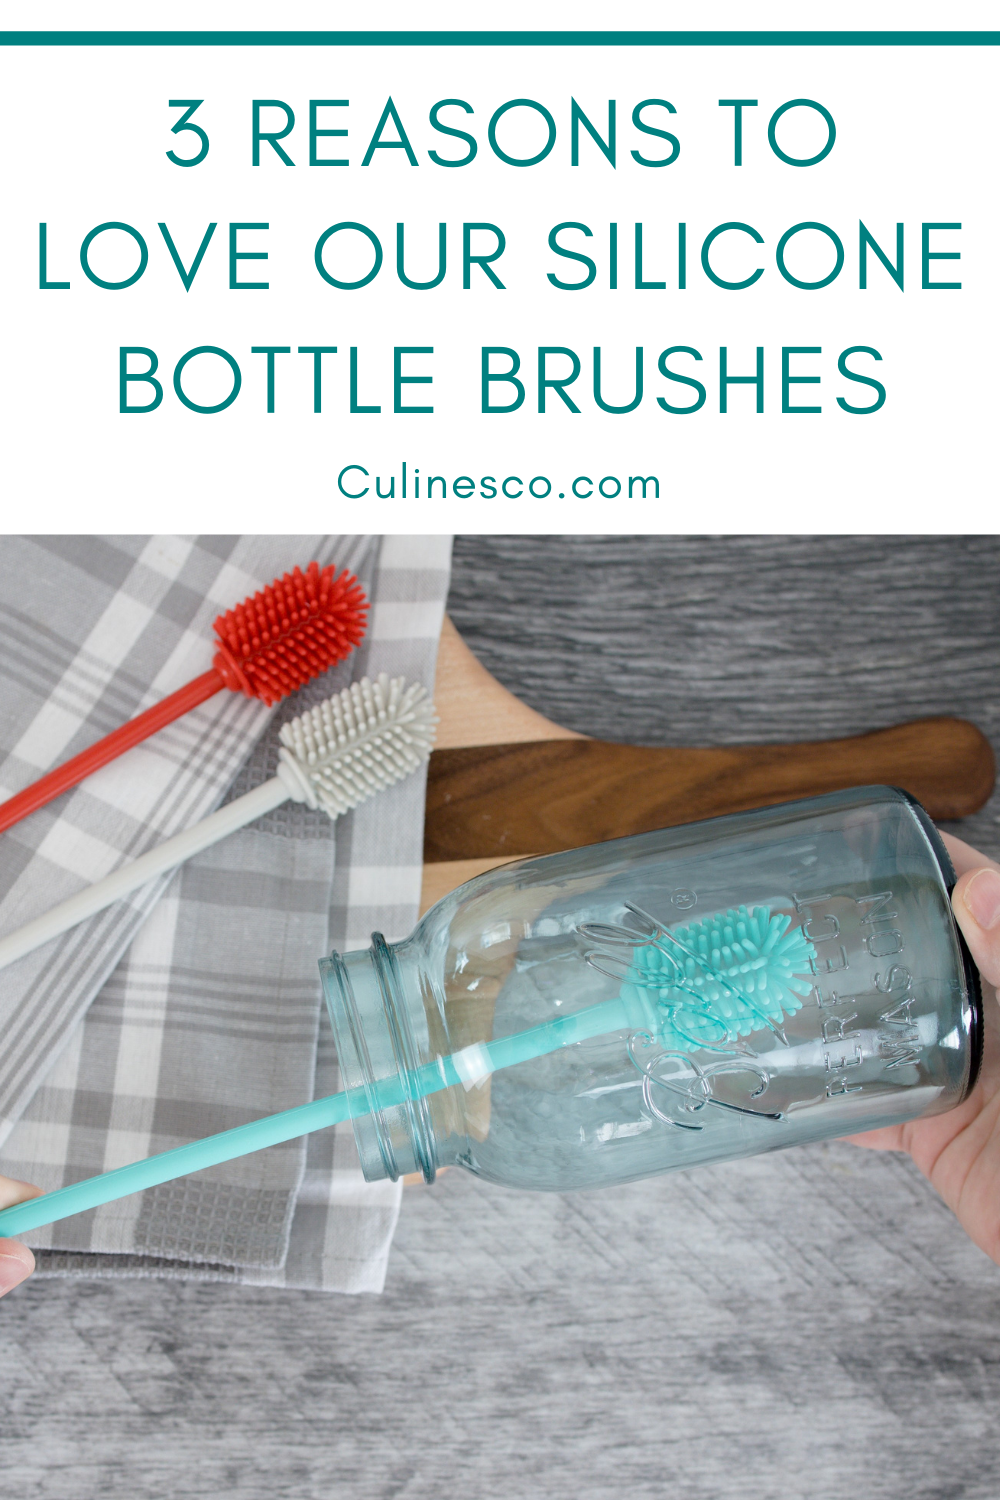 Our silicone bottle brush is a fantastic tool for cleaning tall jars and bottles. Plus it comes in gorgeous colors!